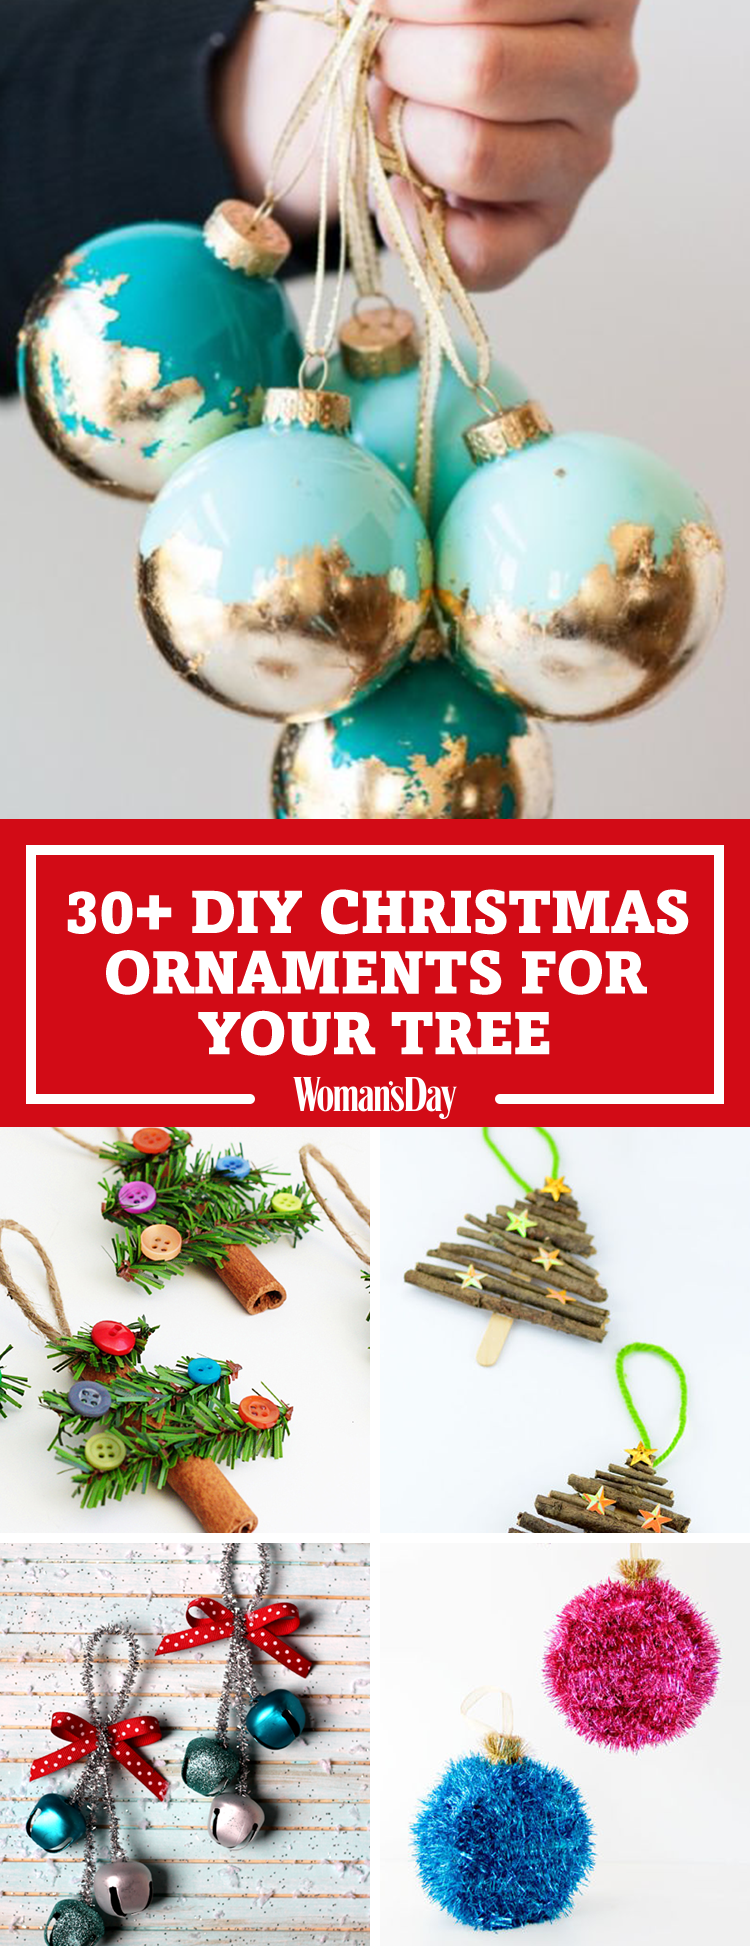 32 homemade diy christmas ornament craft ideas how to make holiday 32 homemade diy christmas ornament craft ideas how to make holiday ornaments solutioingenieria Gallery